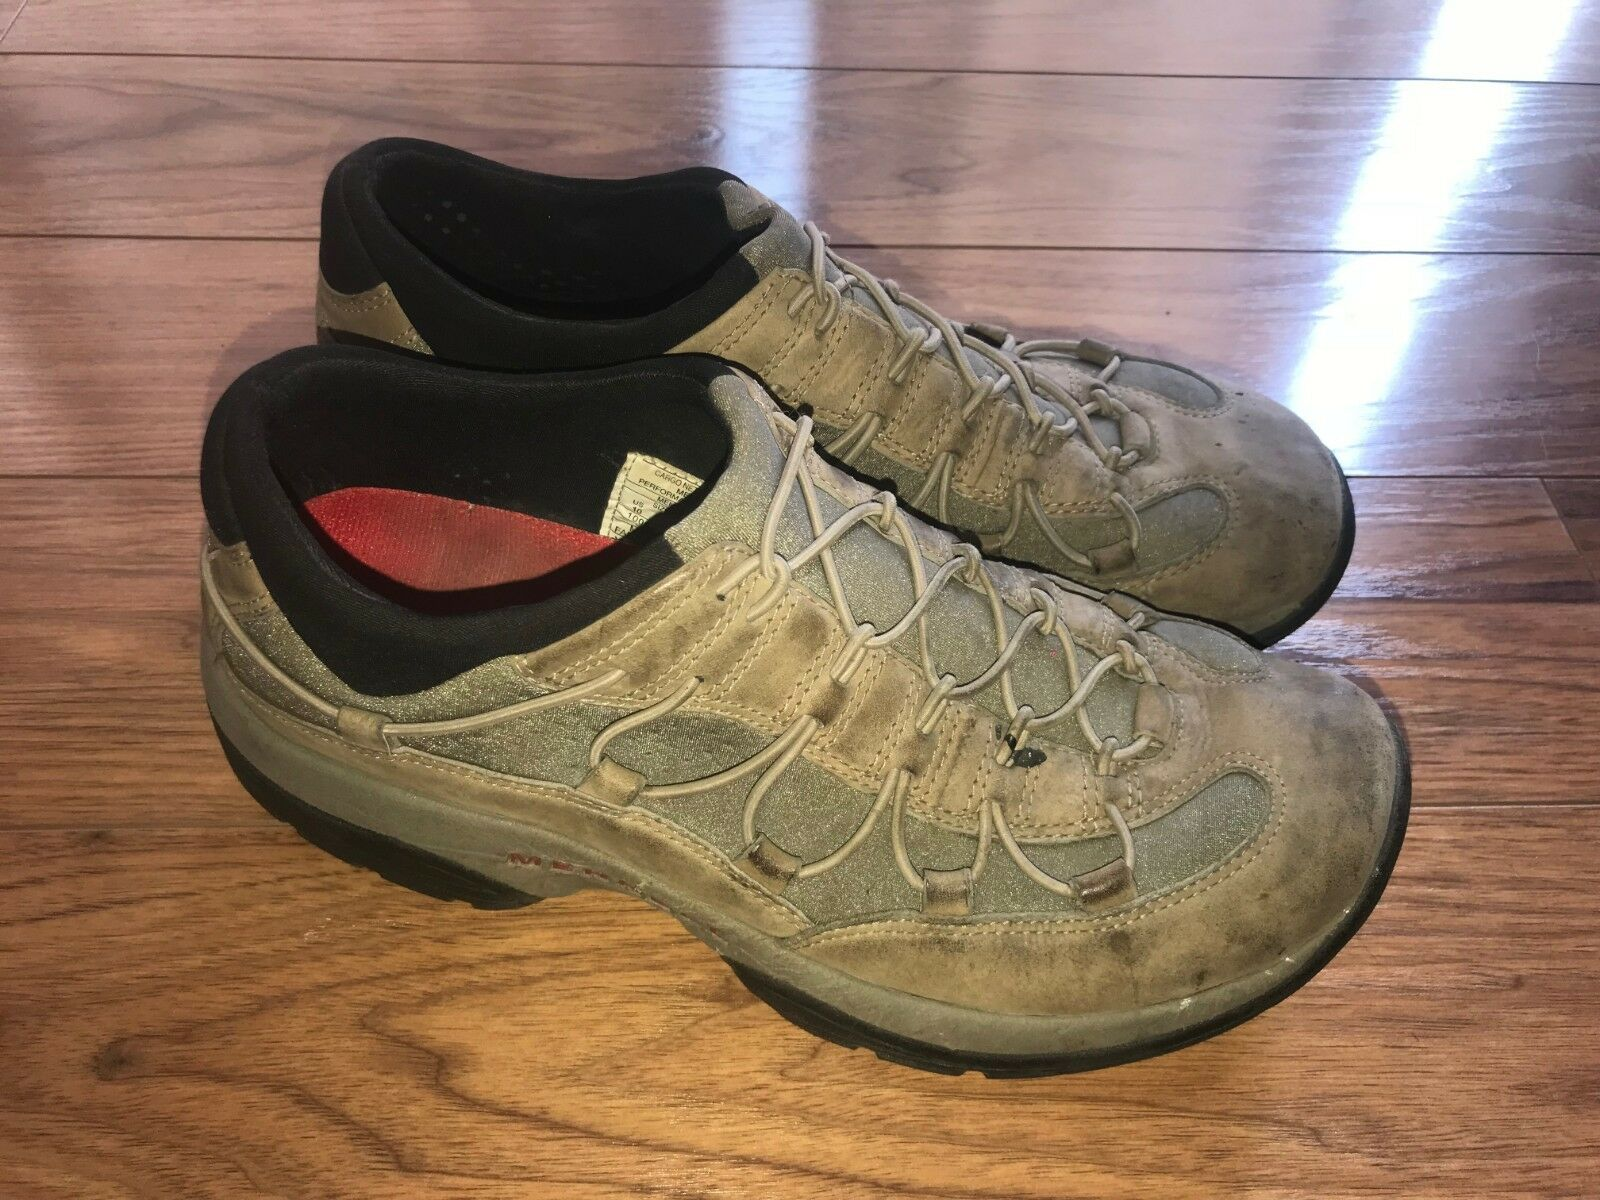 Merrell net moc taupe mens shoes size 10 US